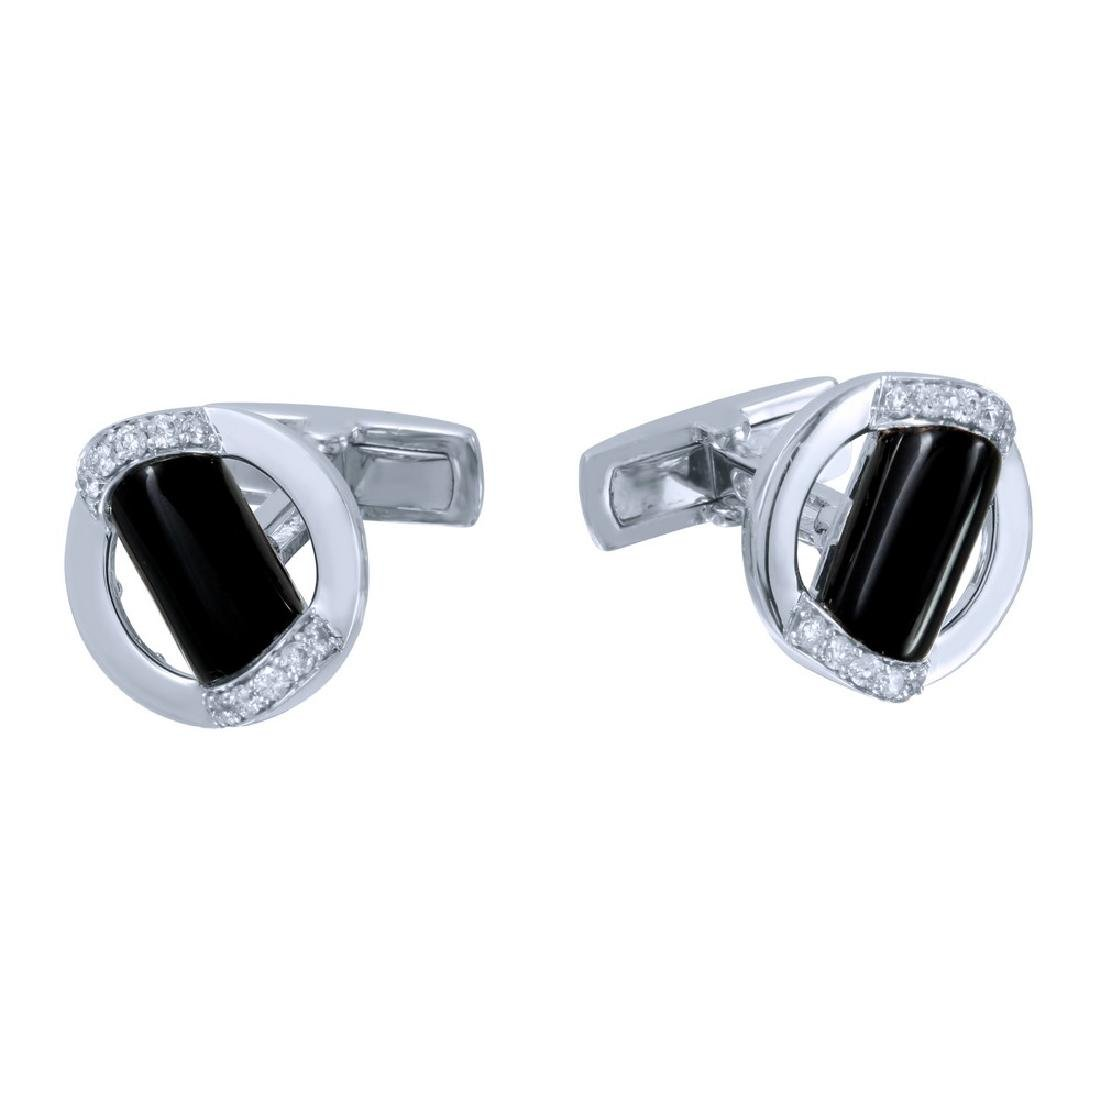 14KT White Gold 5.14ctw Onyx and Diamond Cuff Links